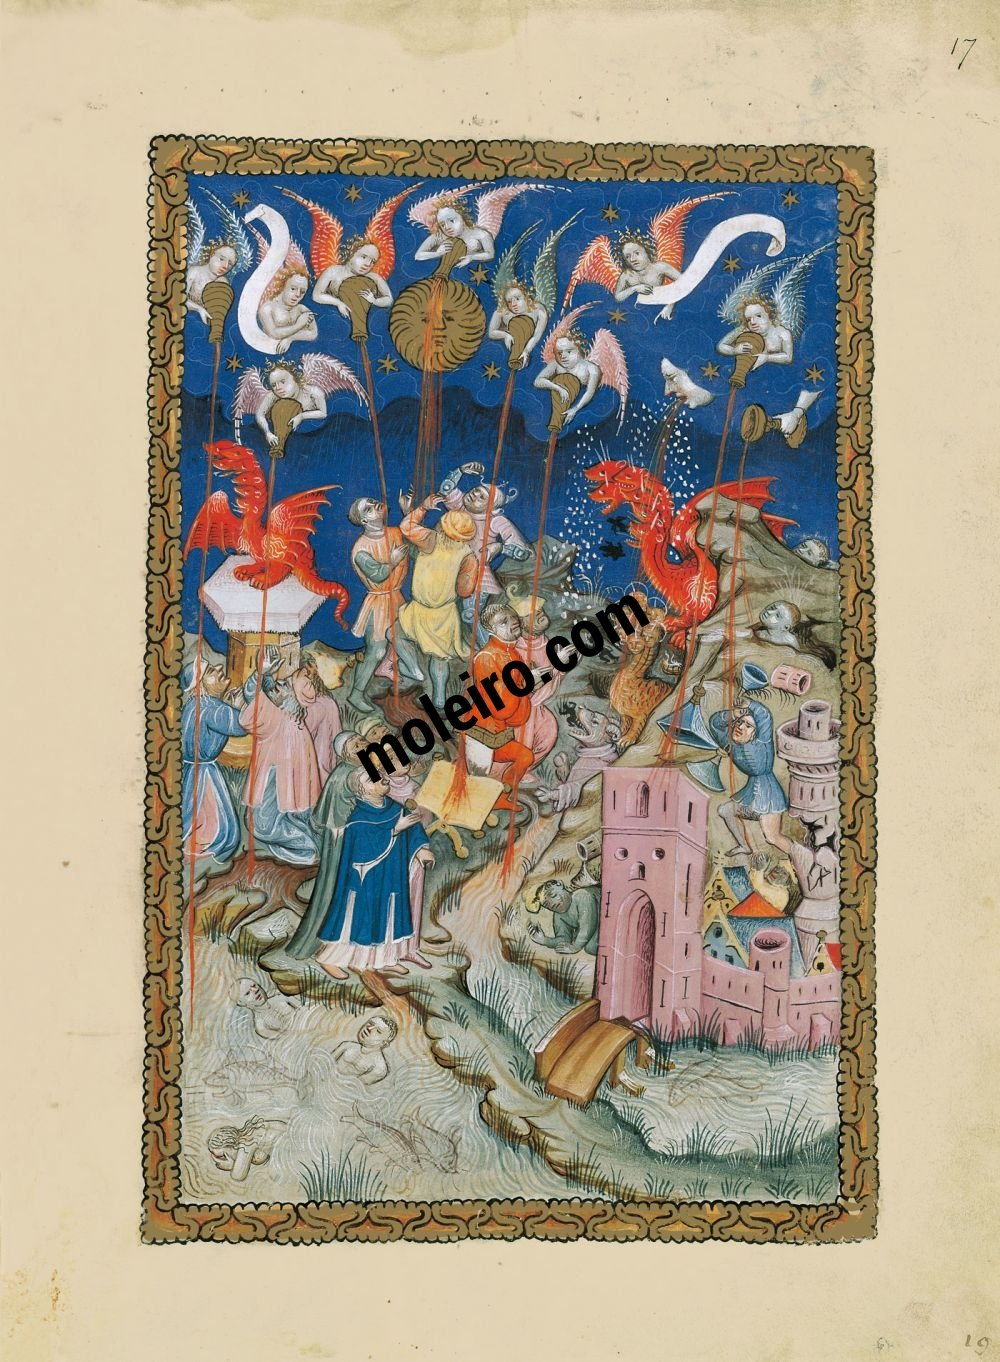 Flemish Apocalypse f. 17r, The seven vials of the wrath of God are poured out upon the earth